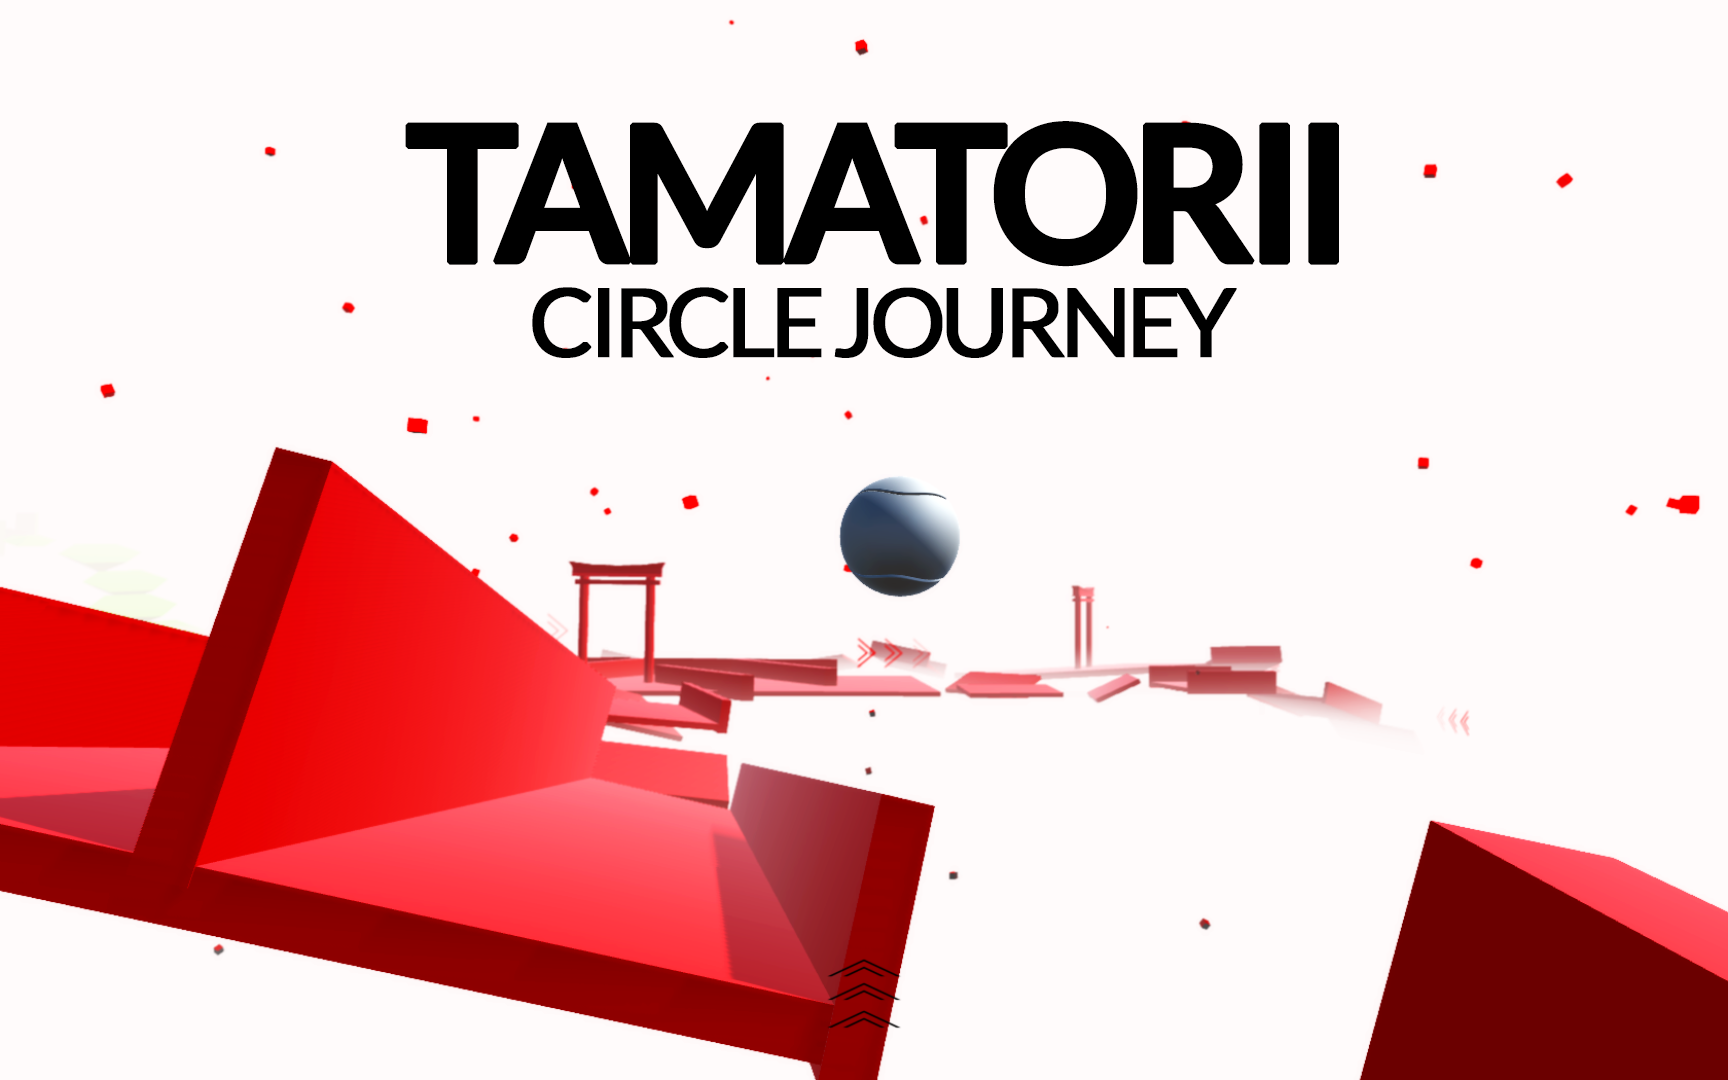 Tamatorii - Circle Journey